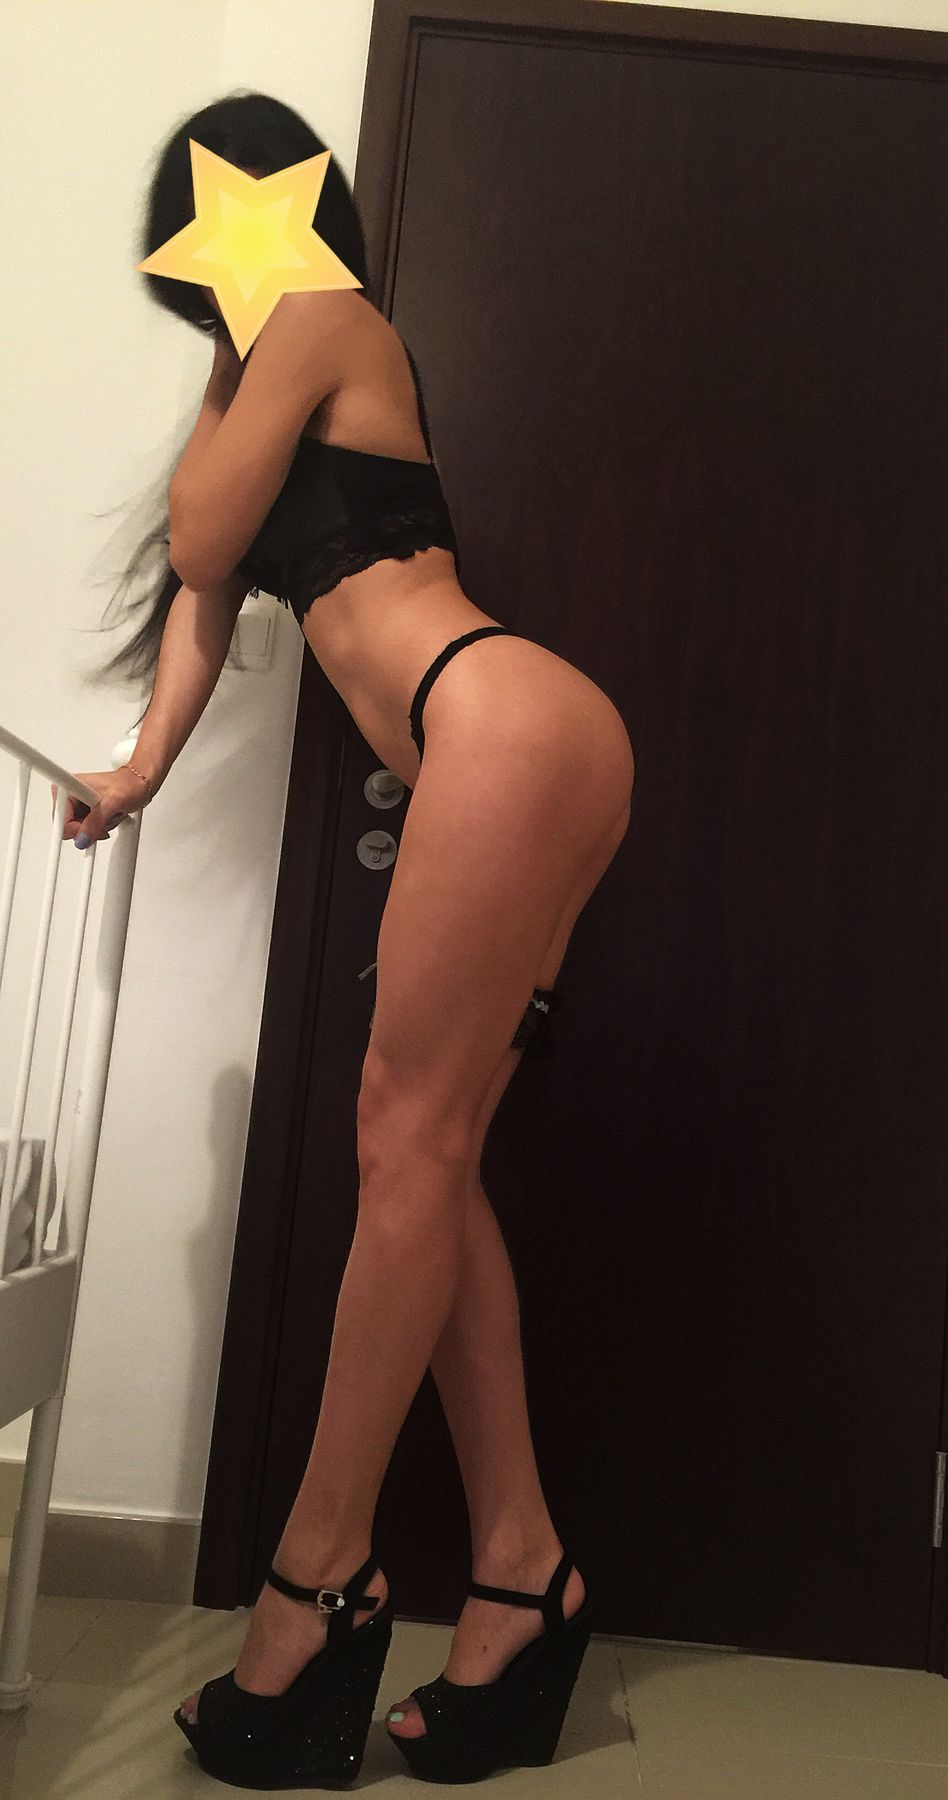 Erotic massage bergen escorts vip